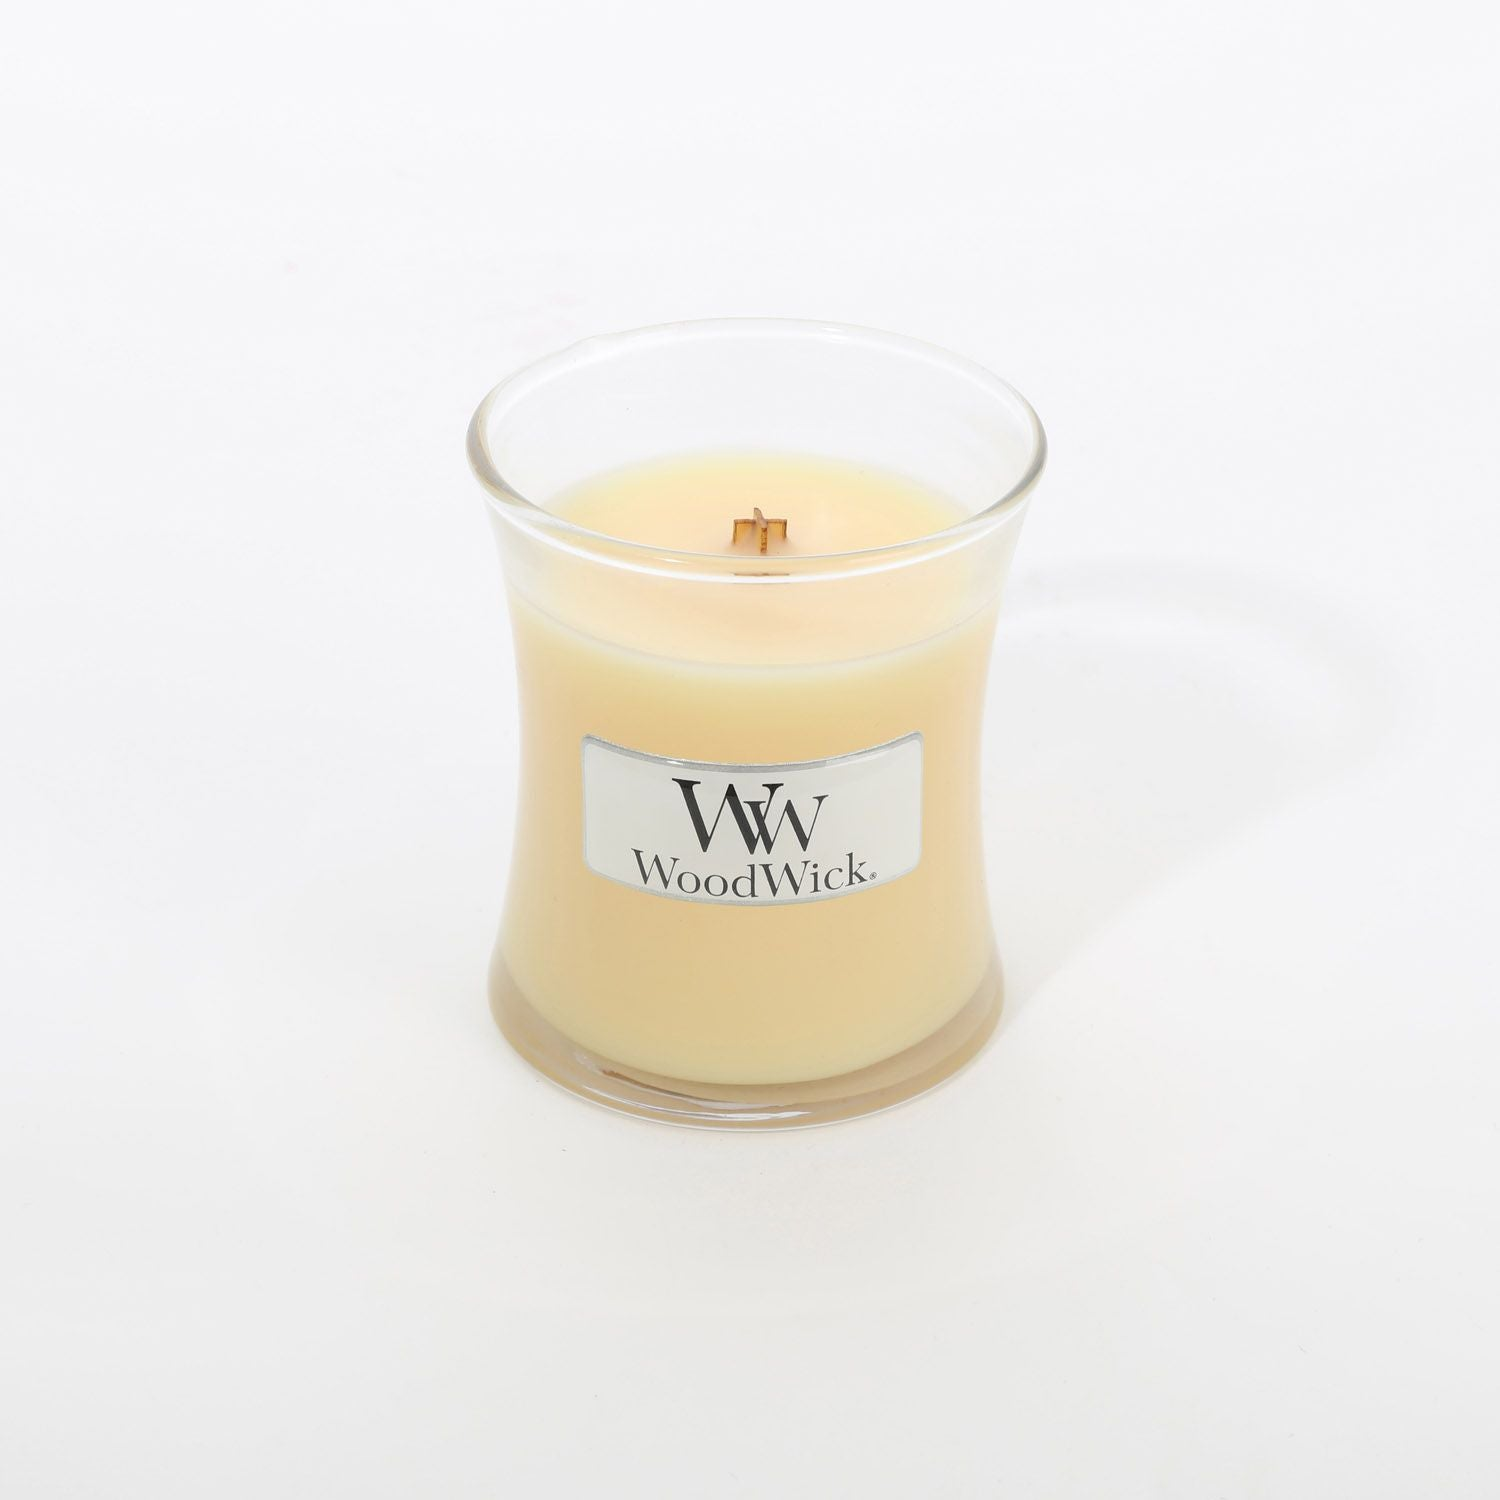 Small Bakery Cupcake Scented WoodWick Soy Candle